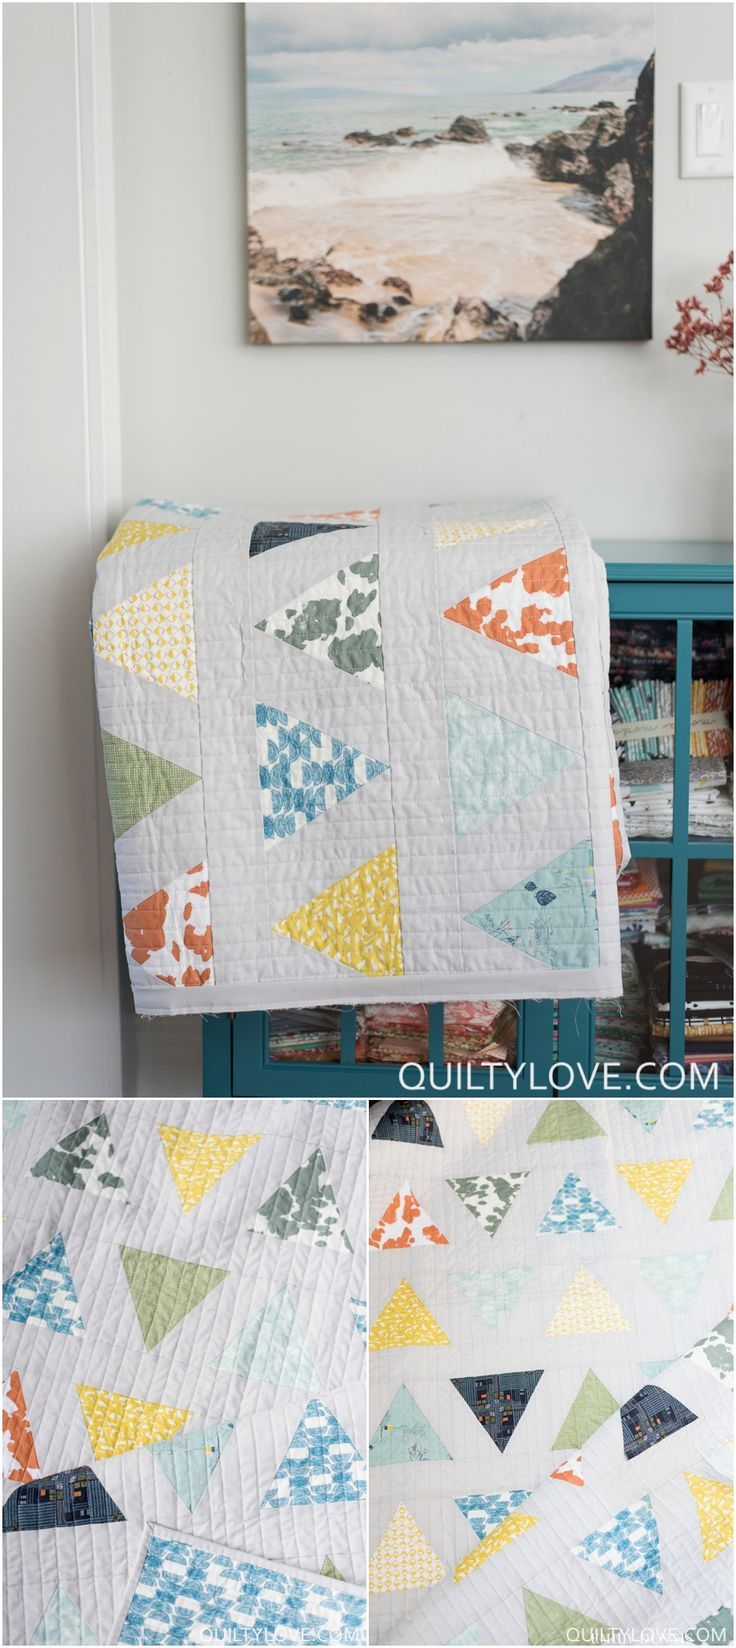 Triangle Pop Quilt Pattern by Emily of Quiltylove.com. This modern triangle quilt was made using Sharon Holland's Bountiful fabric line for Art Gallery Fabrics. Click on through for more photos and to follow the Bountiful fabrics blog tour.